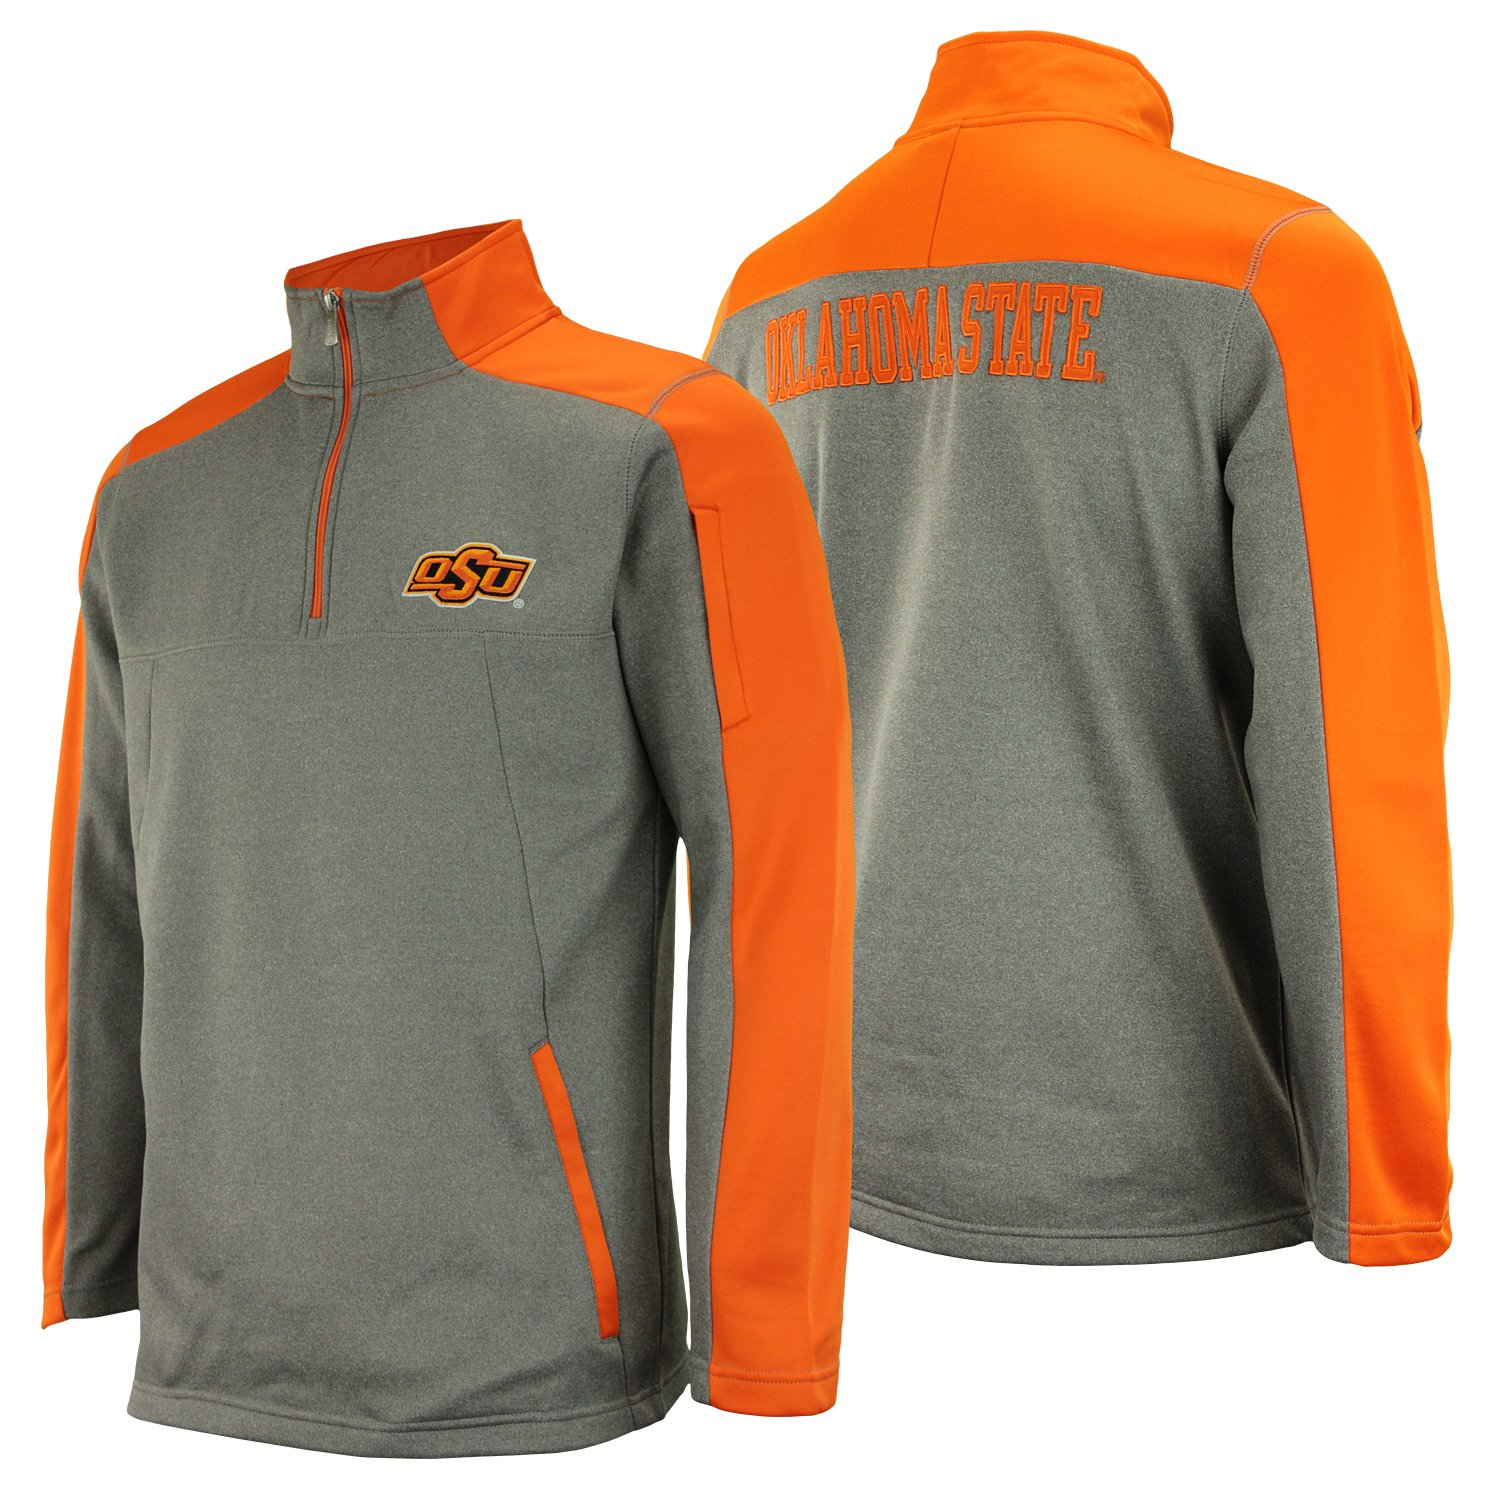 OuterStuff NCAA Men's Oklahoma State Cowboys Performance Poly Fleece 1/4 Zip, Orange